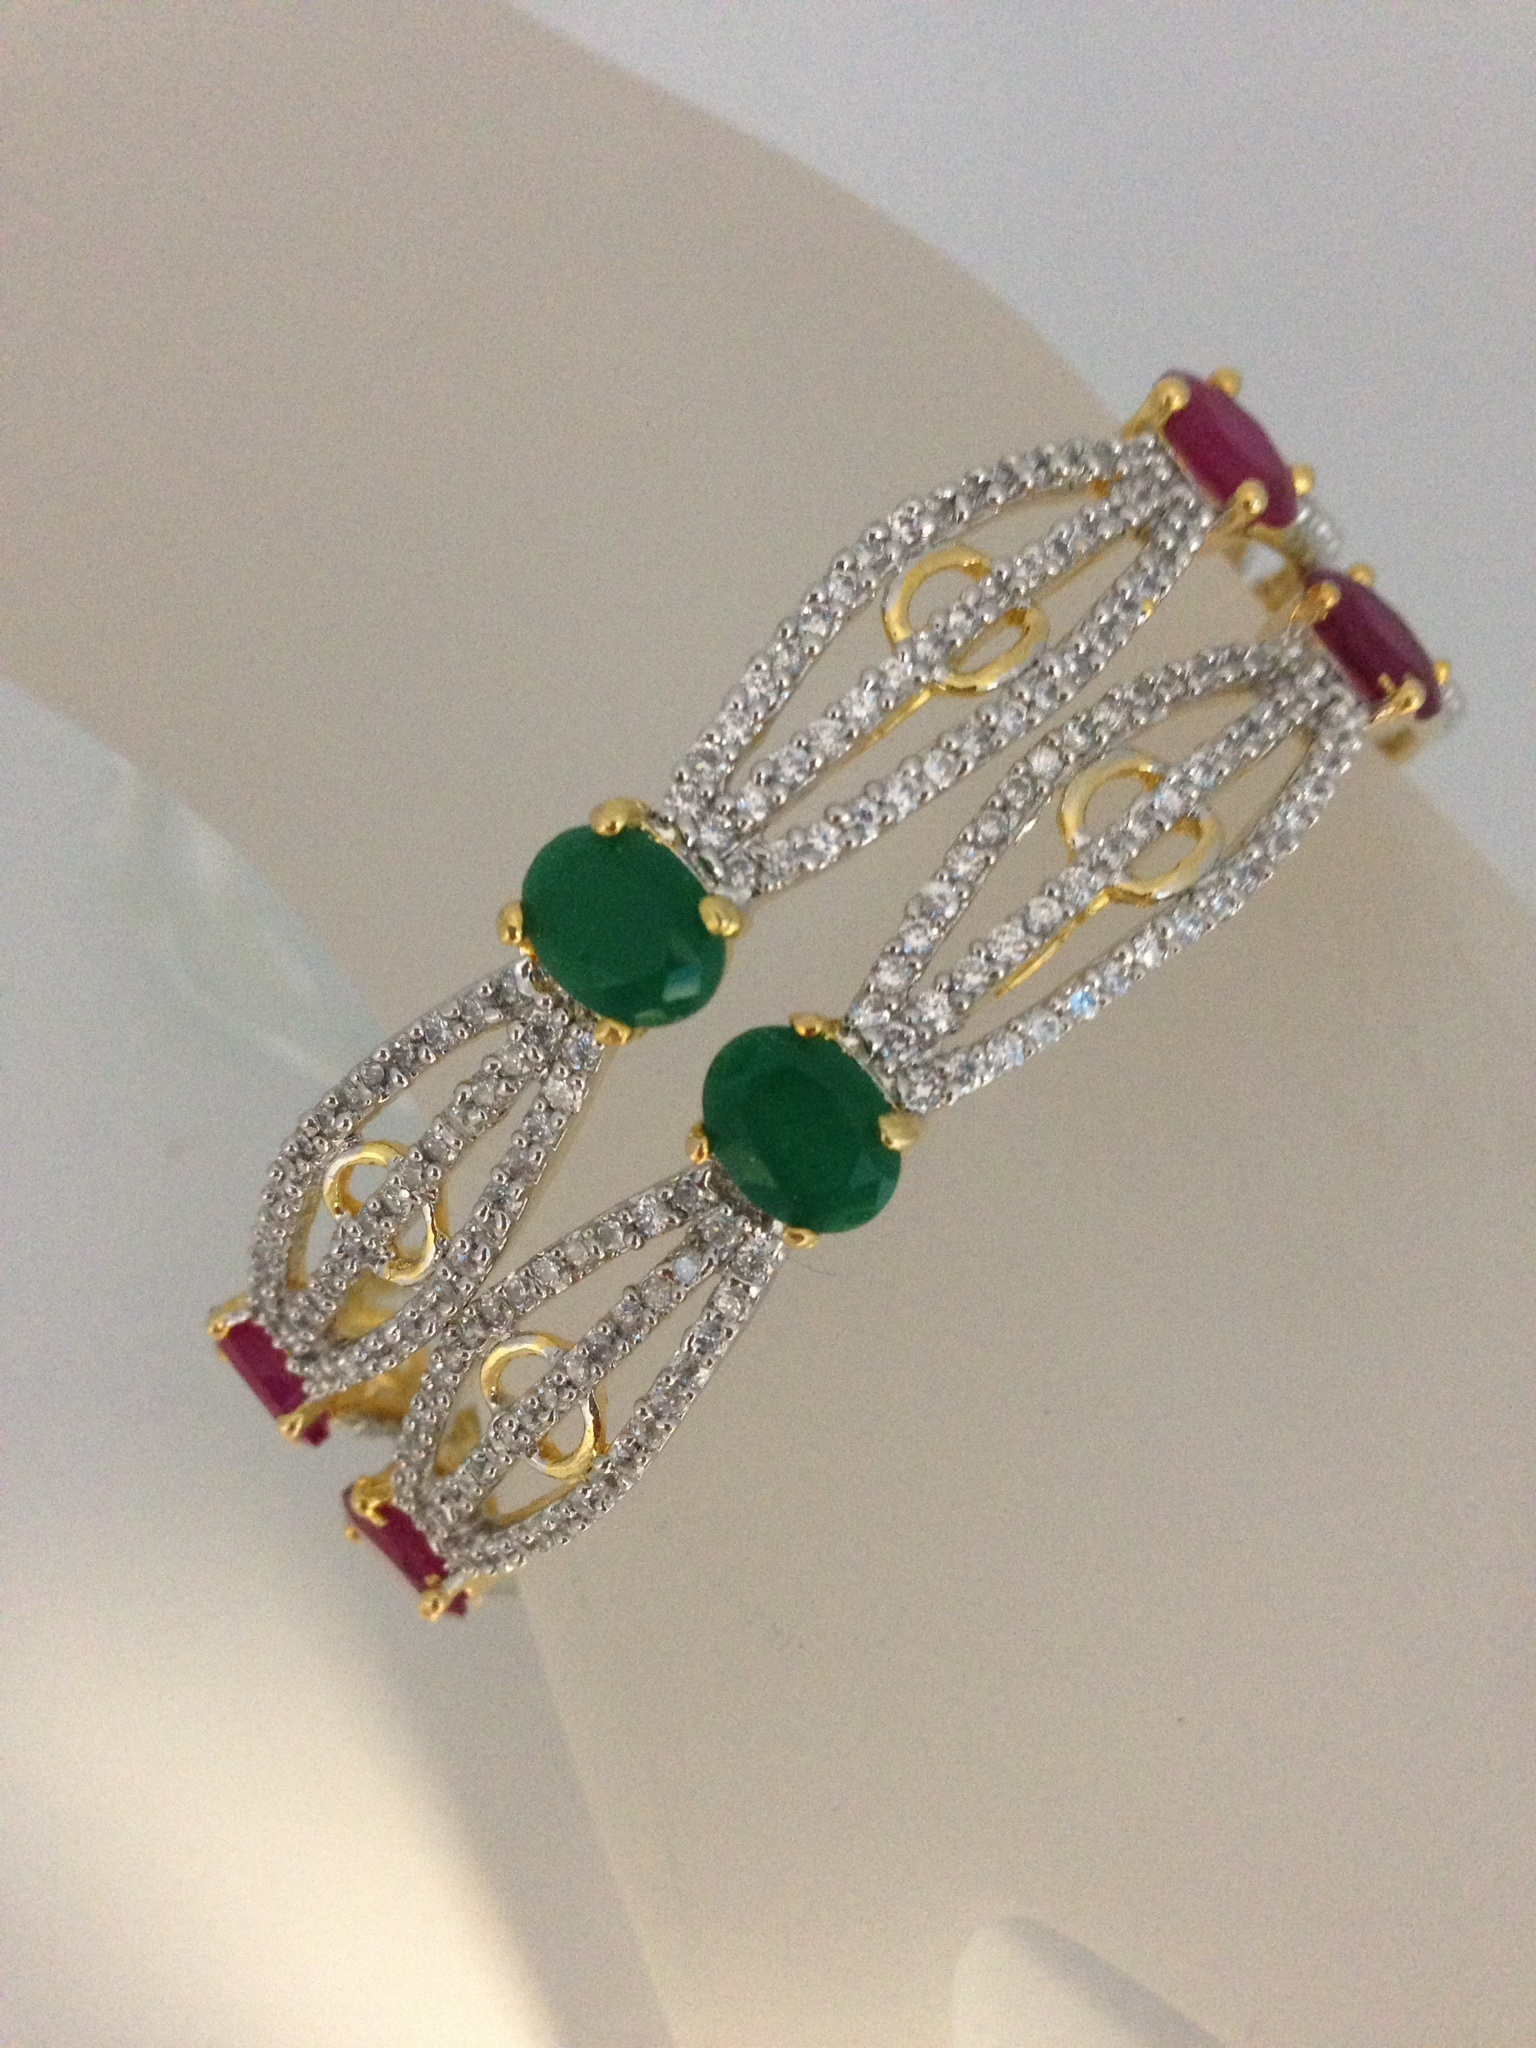 2 pc . Handmade Gold Plated CZ AD Bangle Bracelet Kada